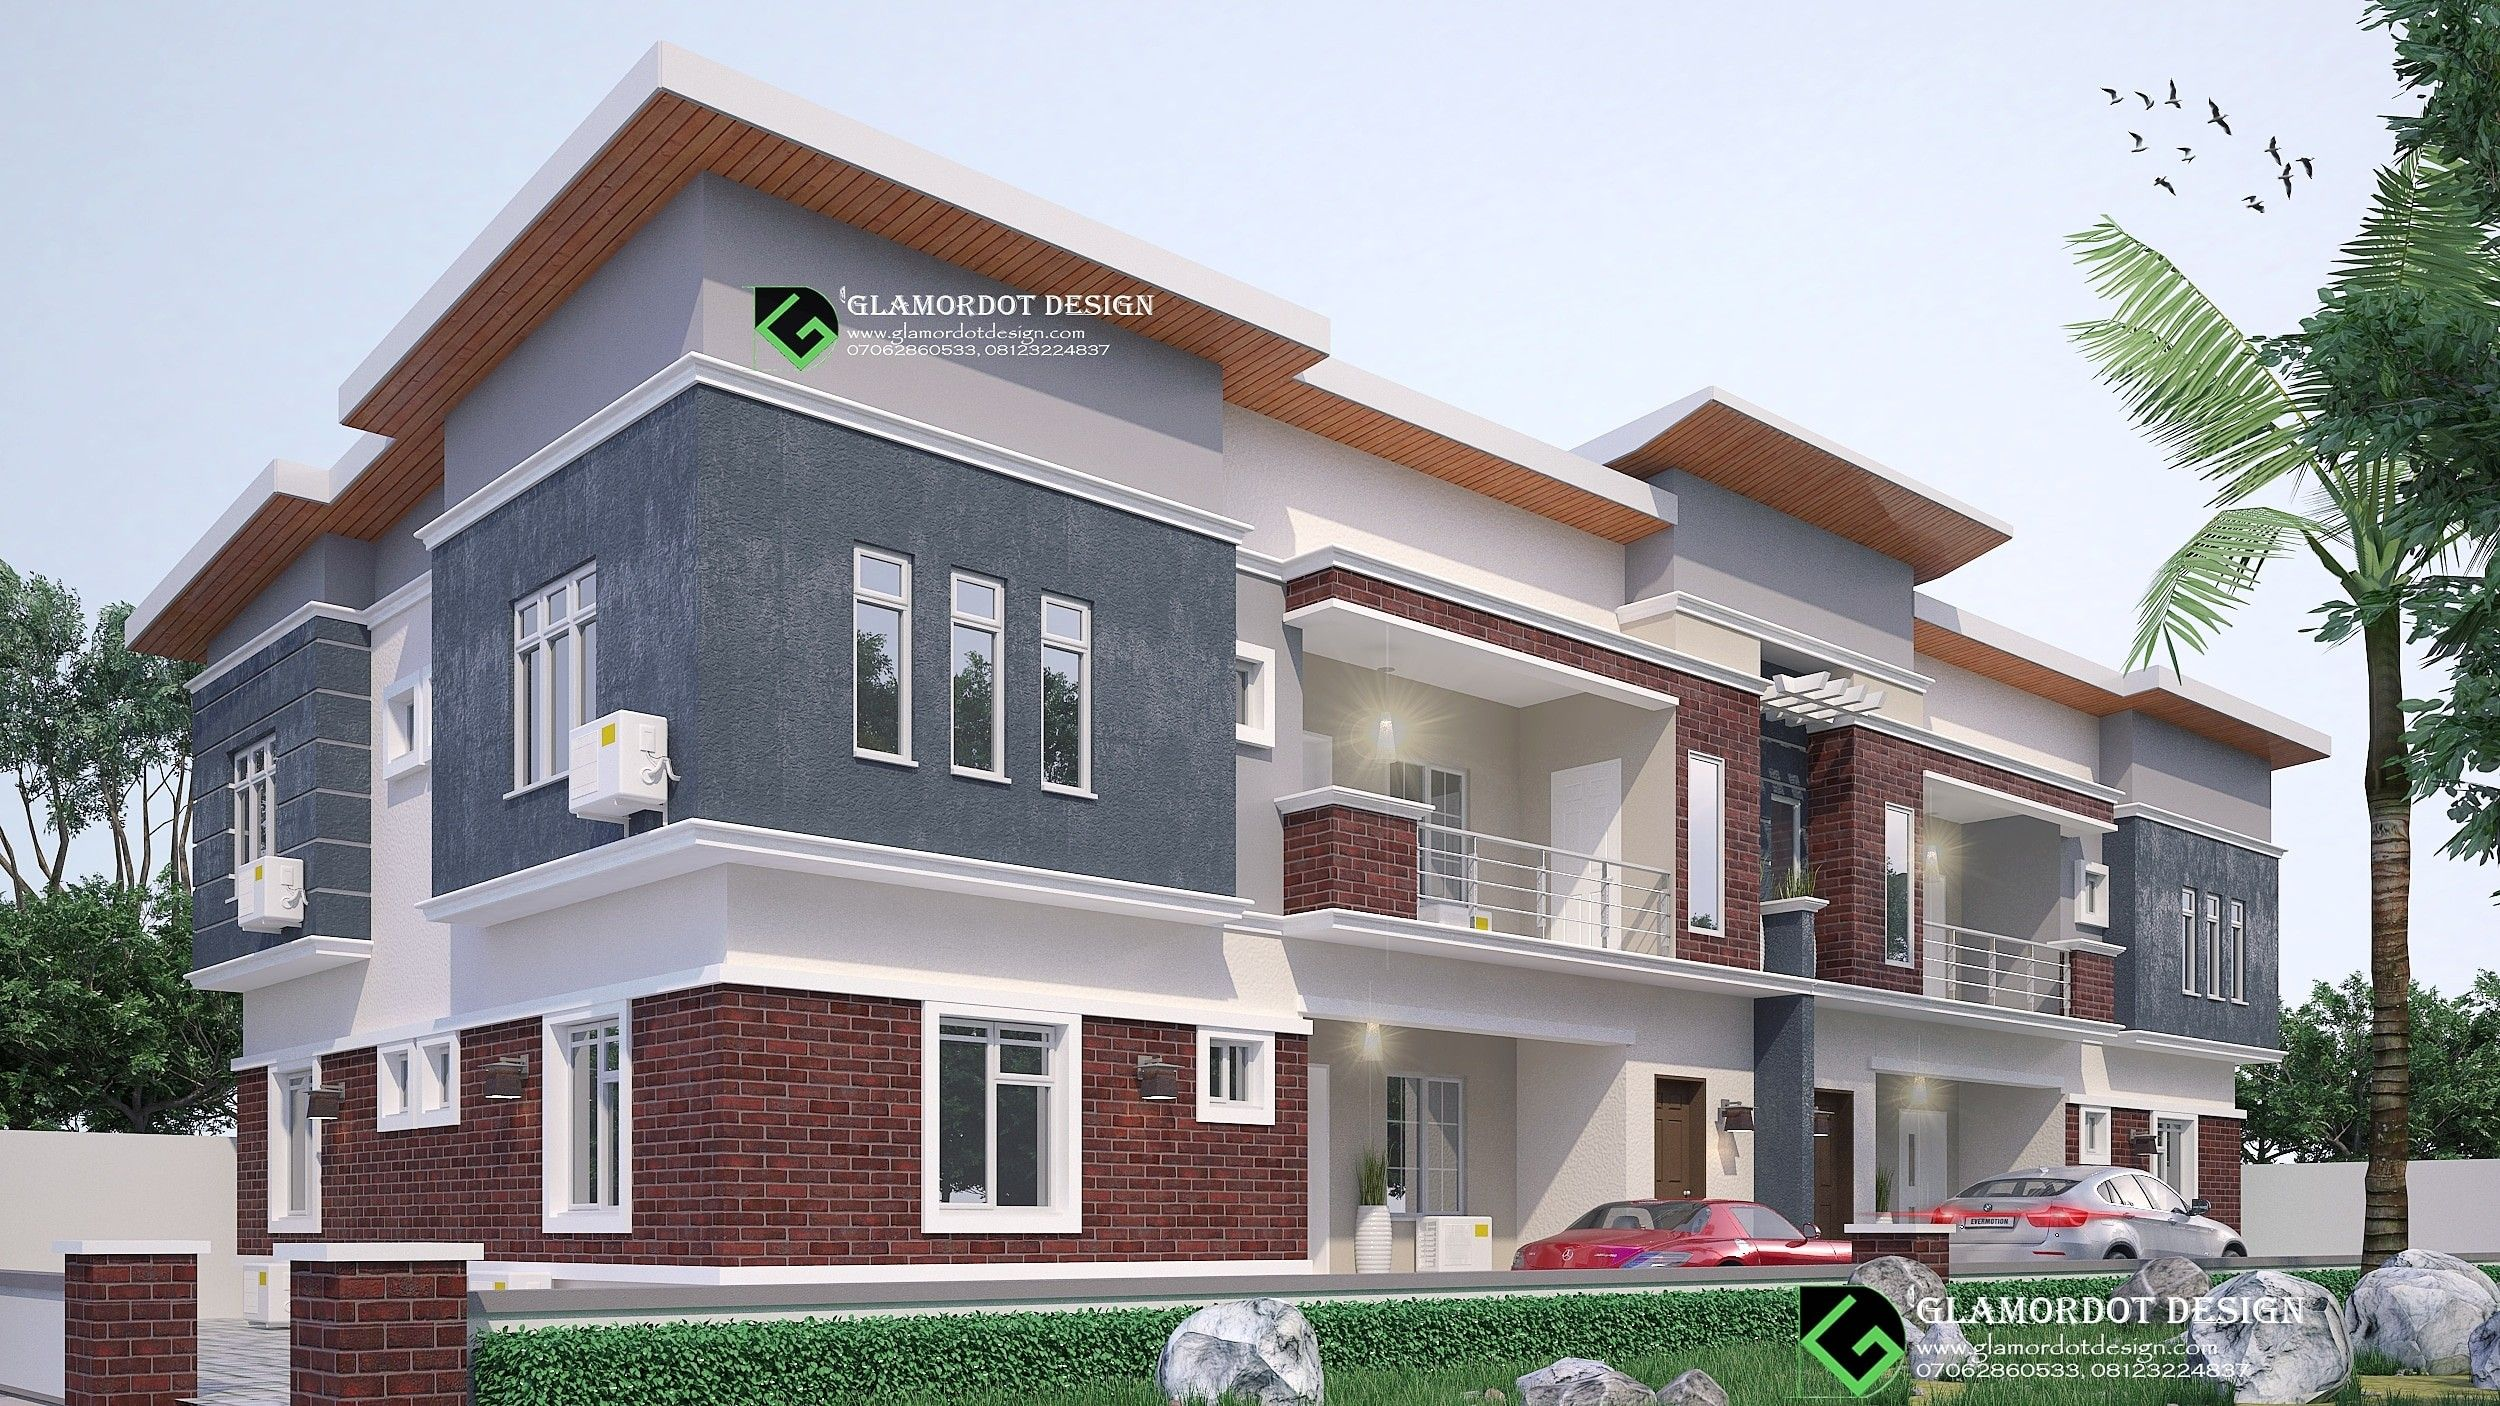 semi-detached house plan. 4 units 2 bedroom flat. all rooms